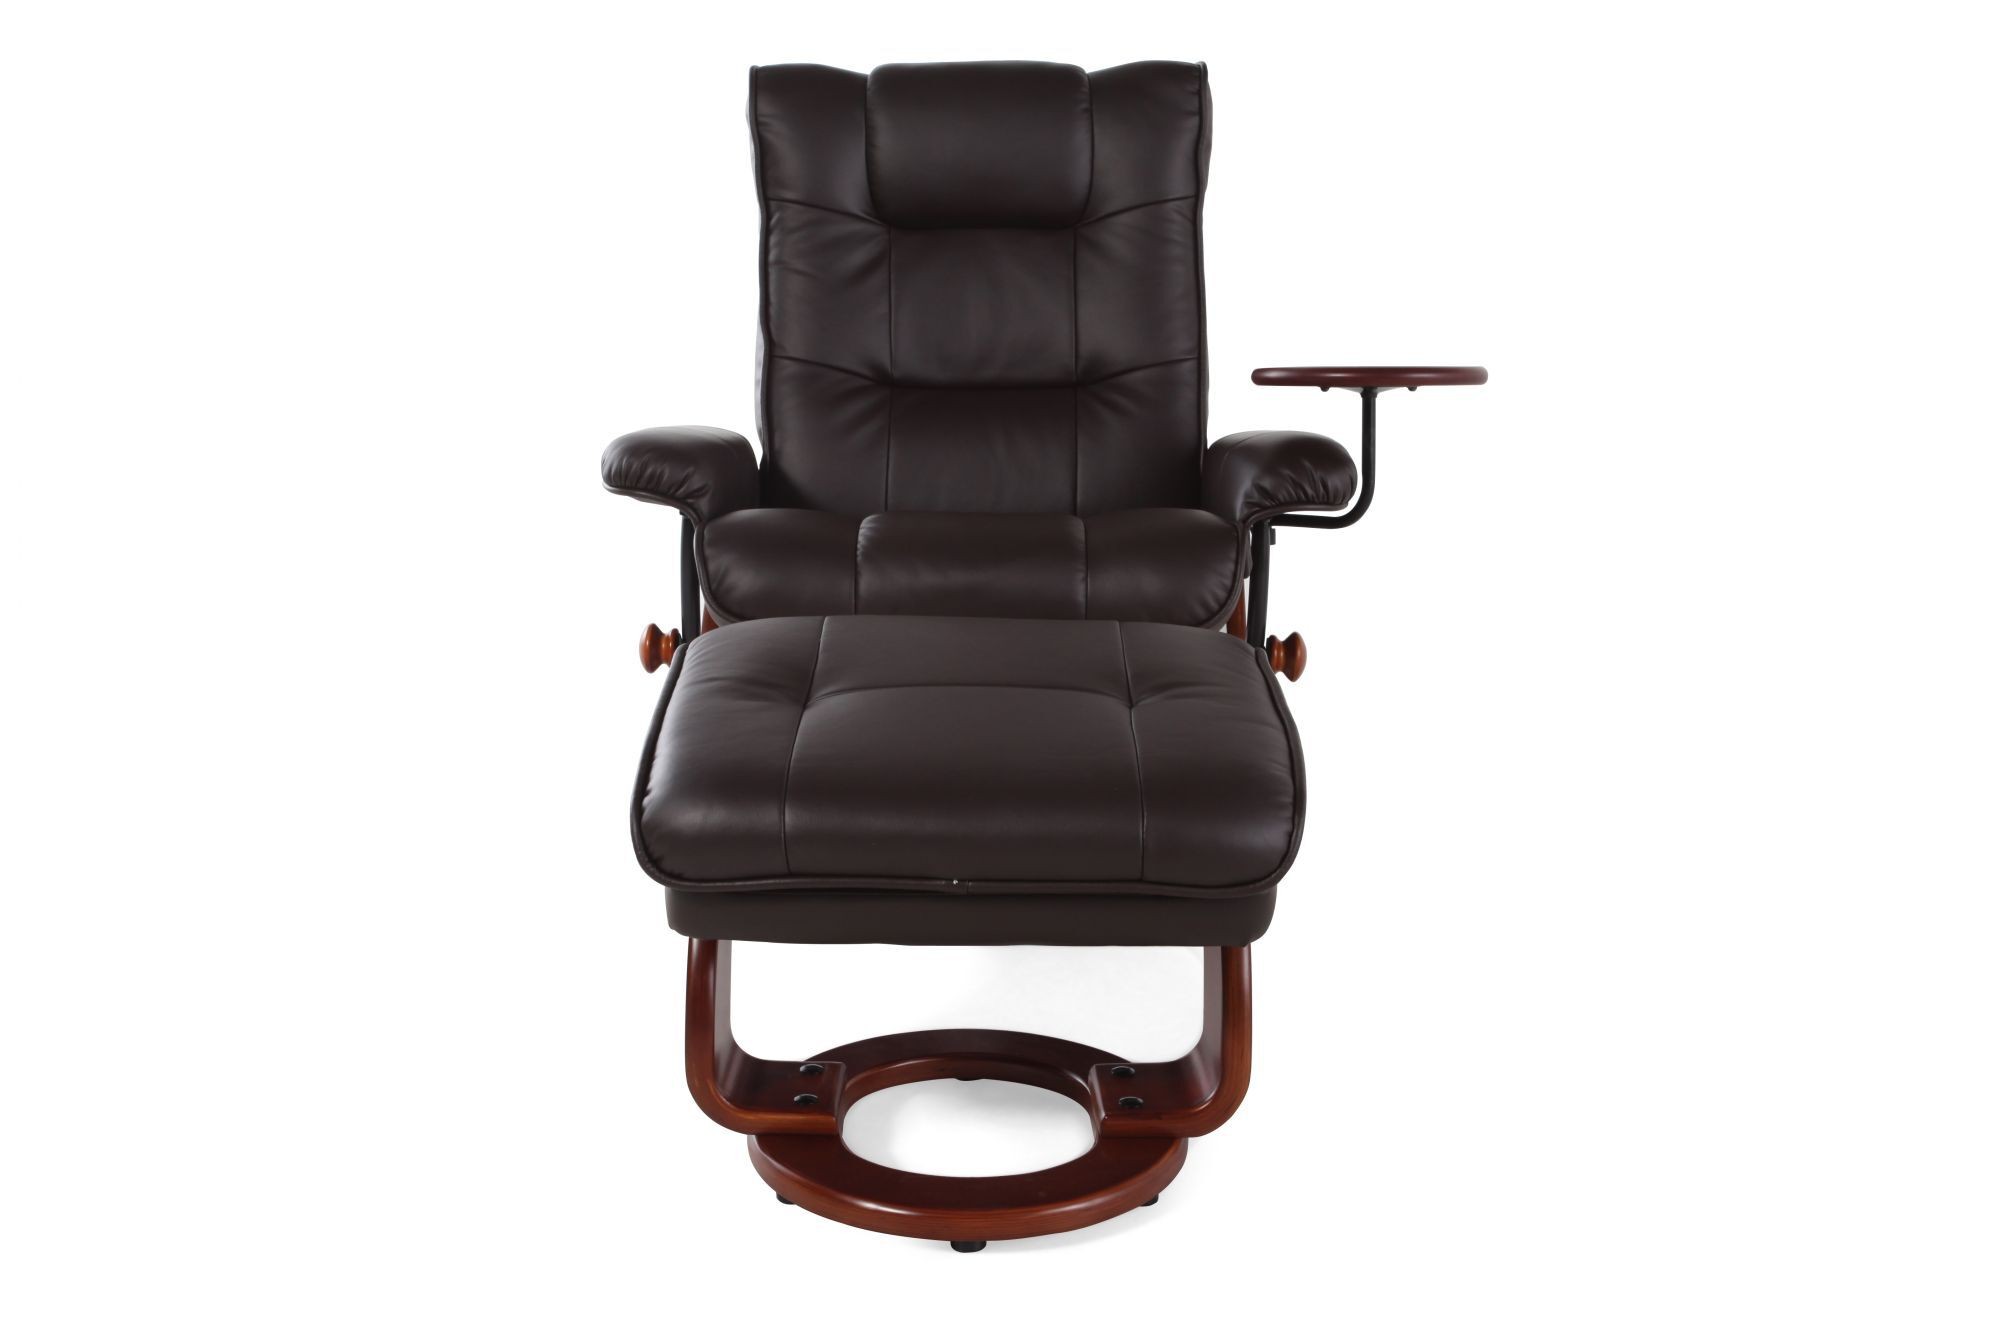 Reclining Chair And Ottoman Benchmaster Swivel Reclining Chair And Ottoman Mathis